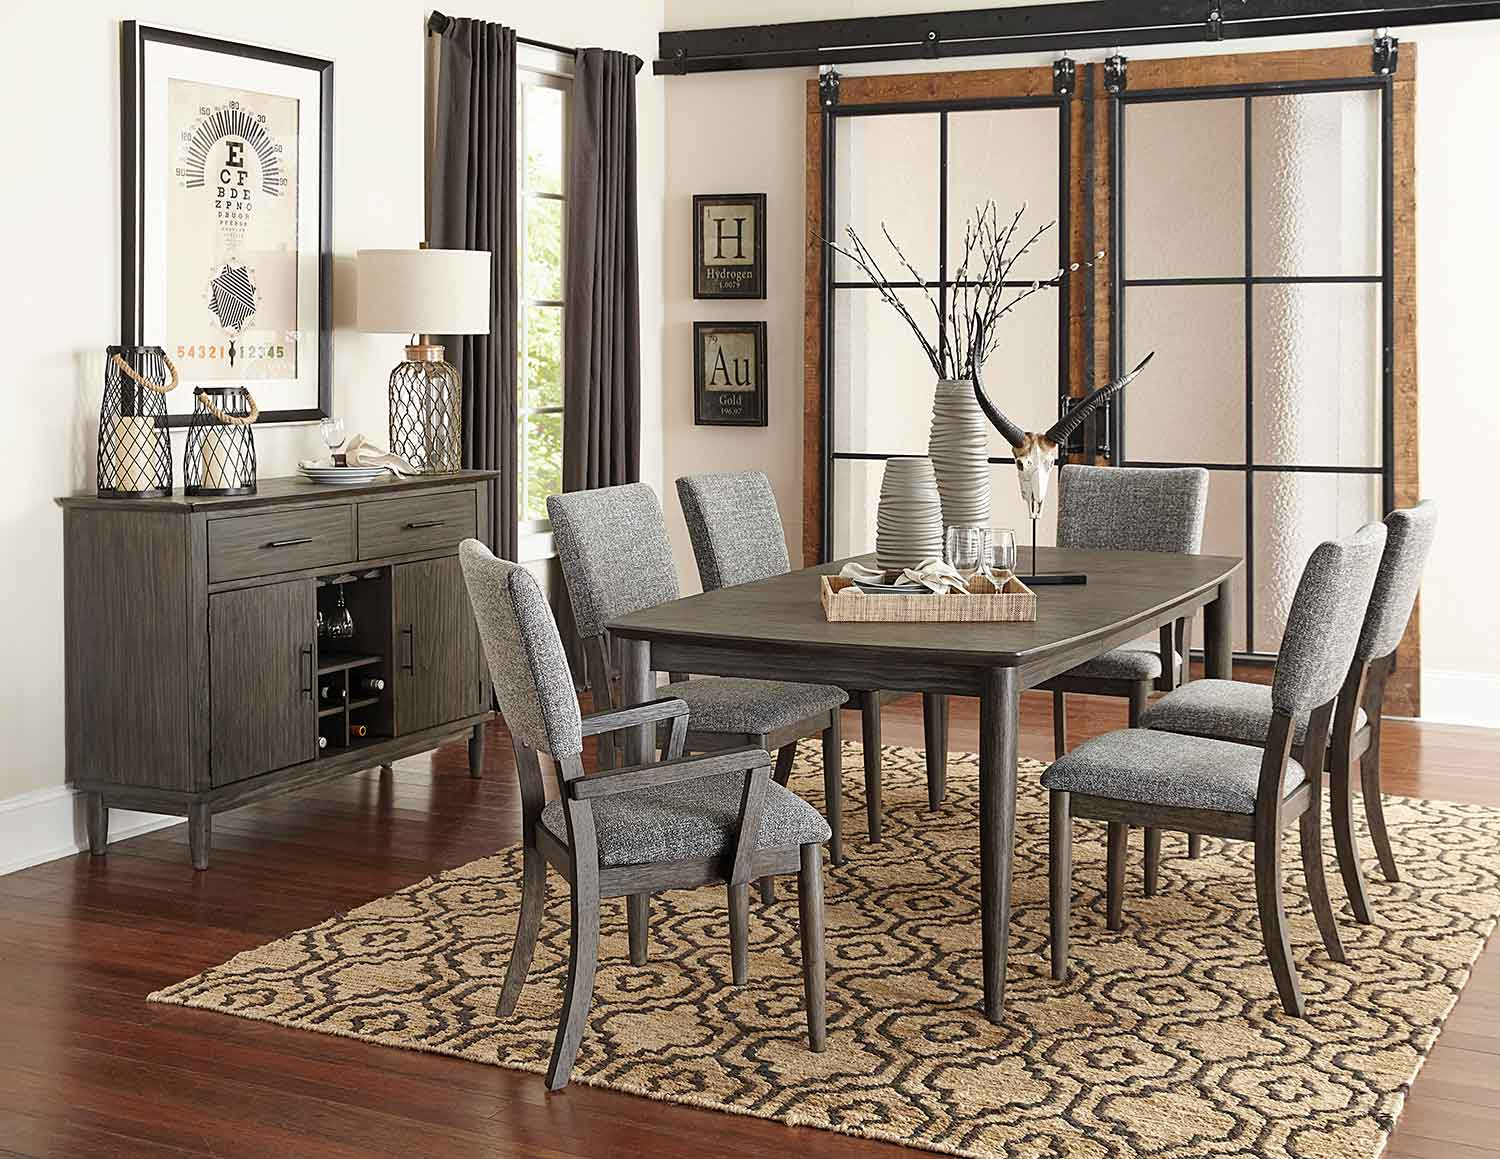 Homelegance Roux Dining Set - Rustic or Grey